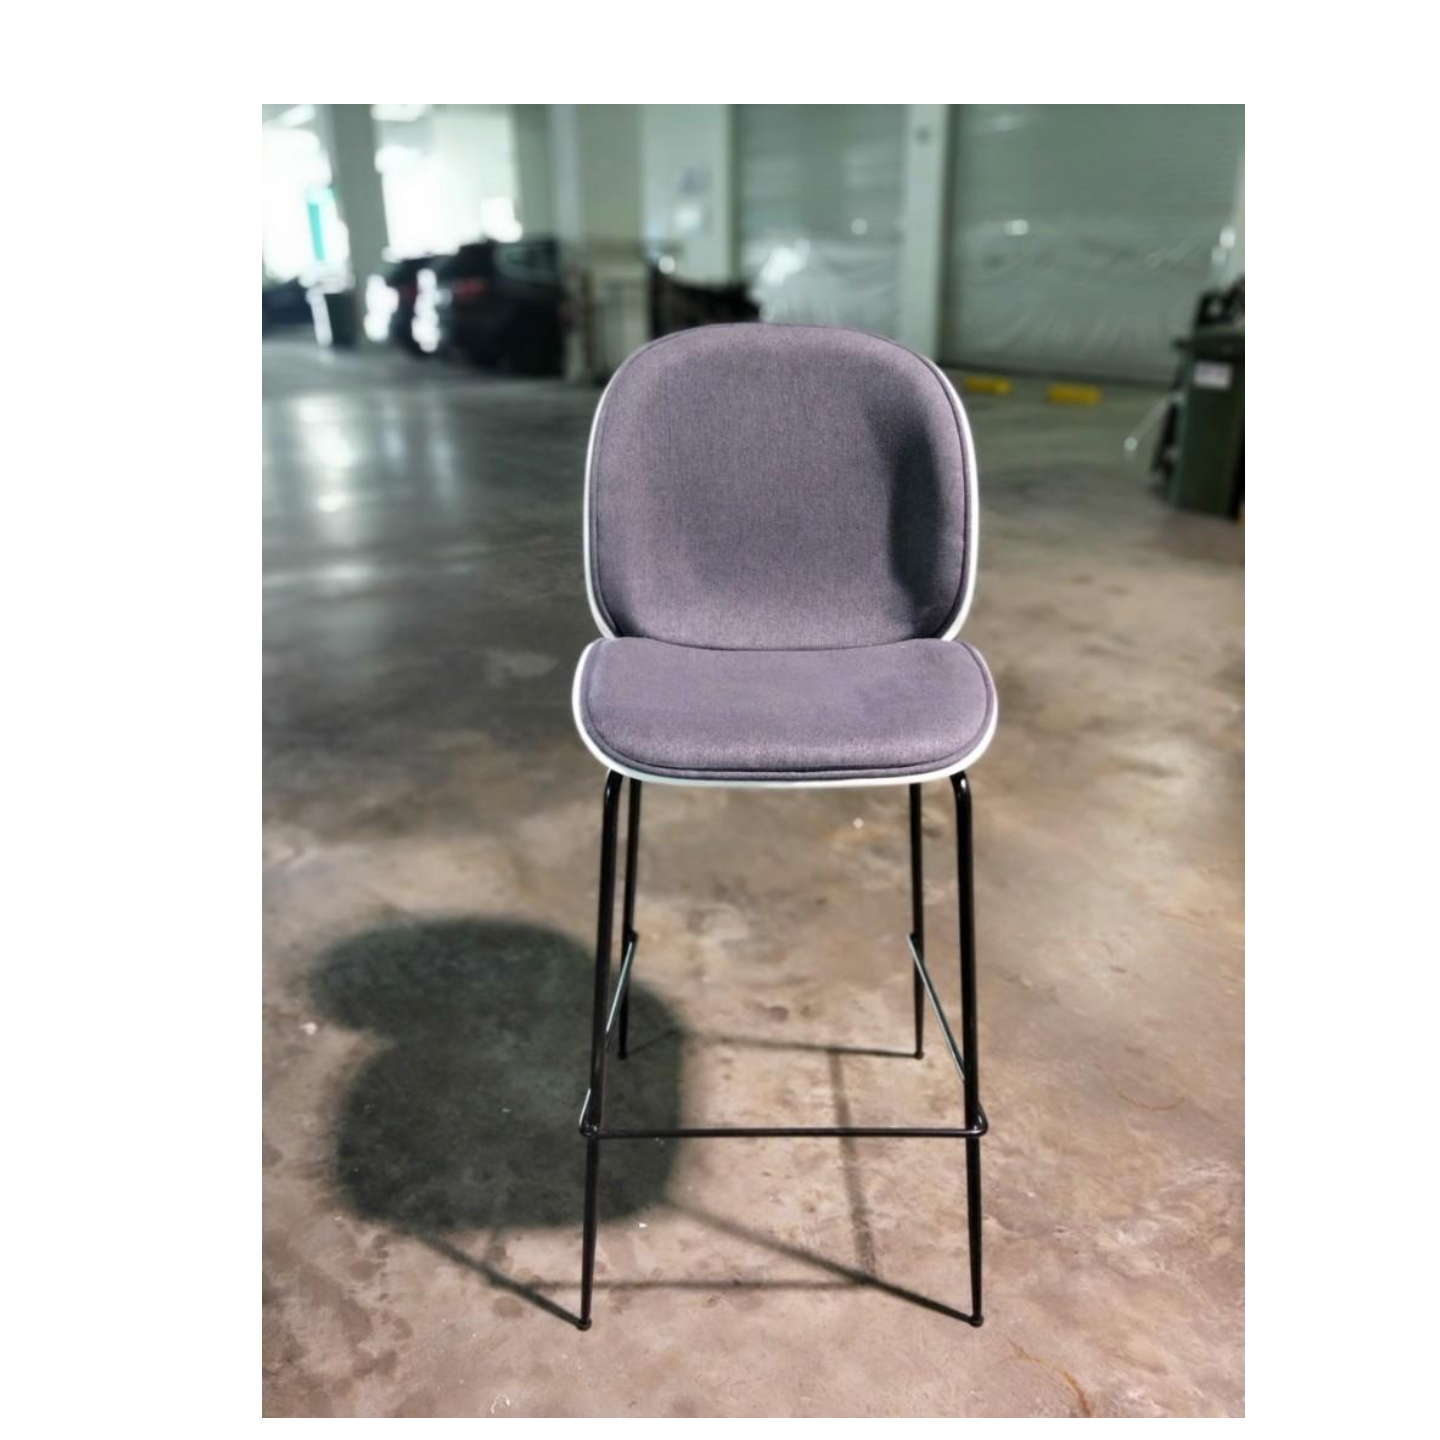 VOLKZ Bar Chair in GREY FABRIC